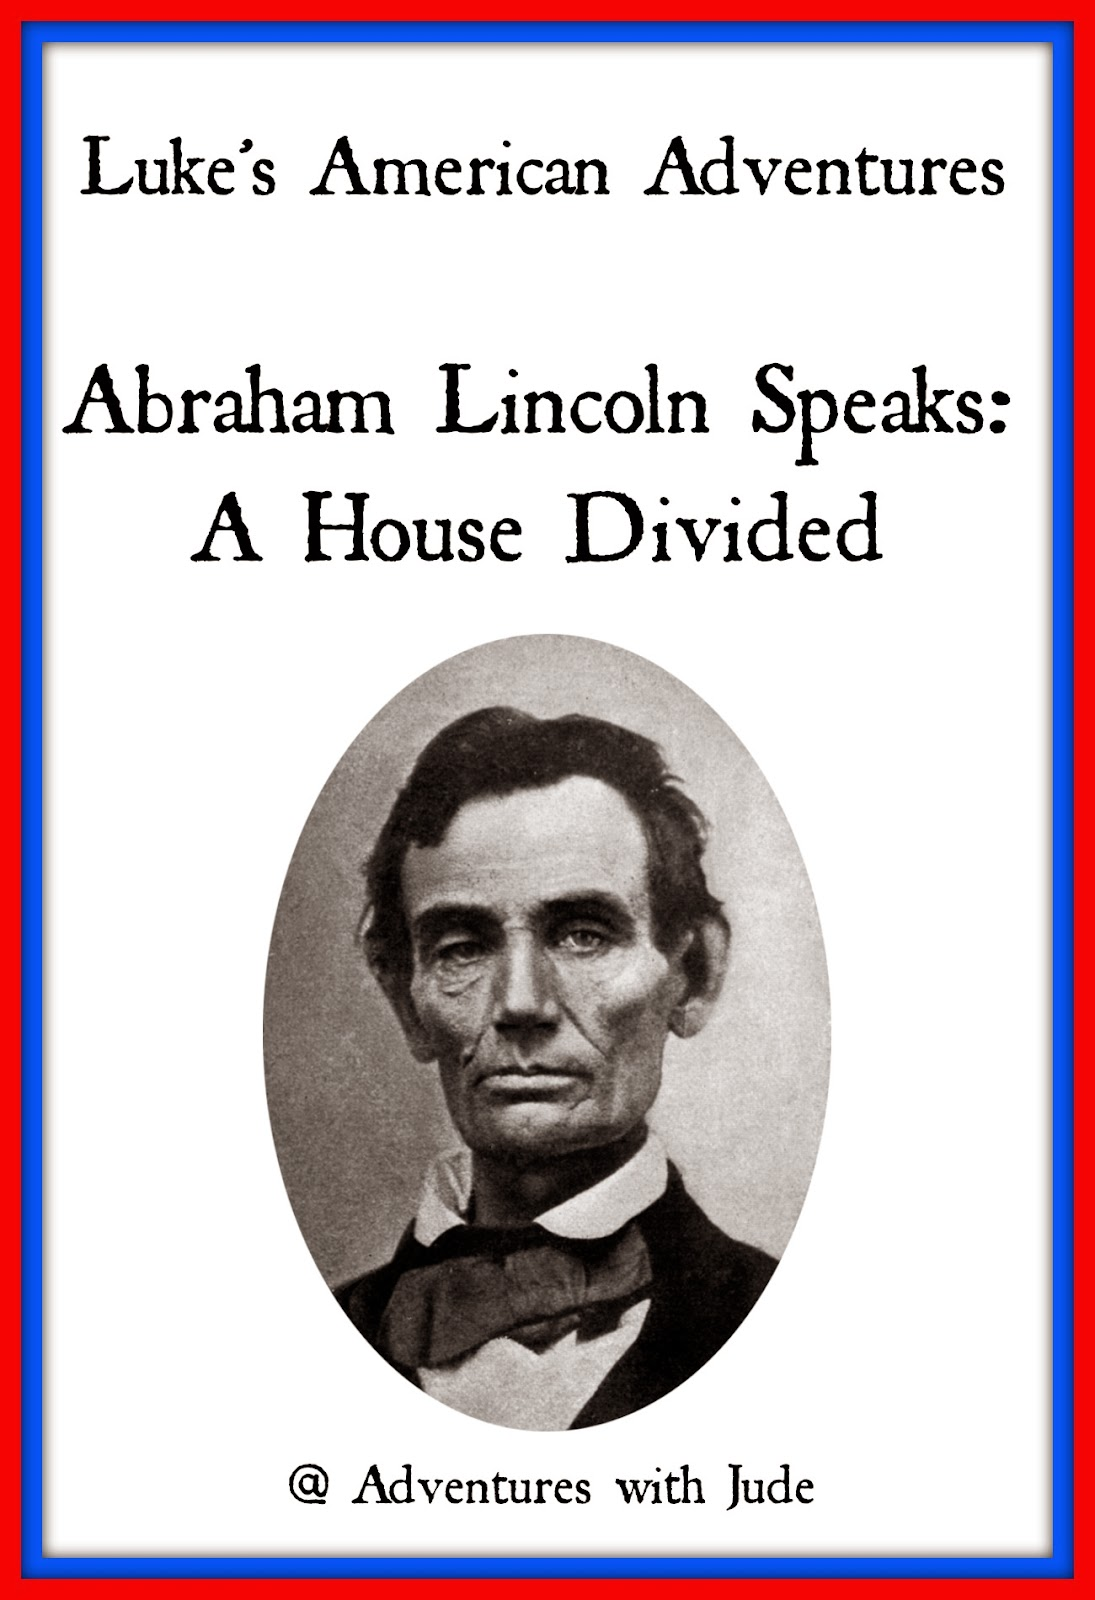 Luke's American Adventures Abraham Lincoln Speaks: A House Divided